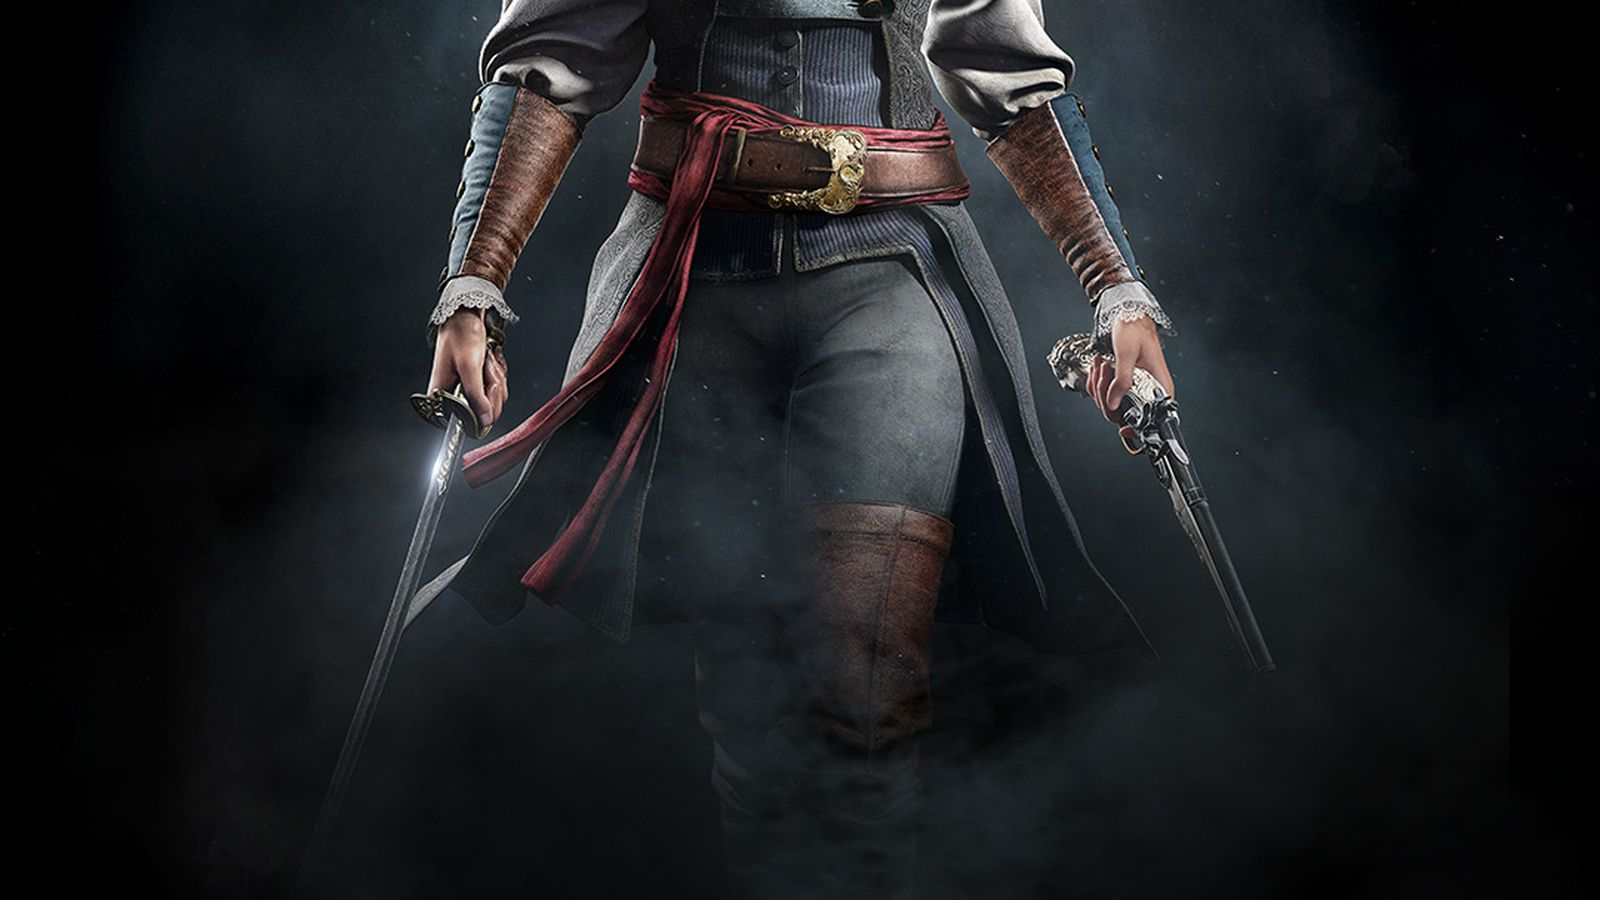 Watch the hero of Assassin's Creed Unity save the life of Elise, a